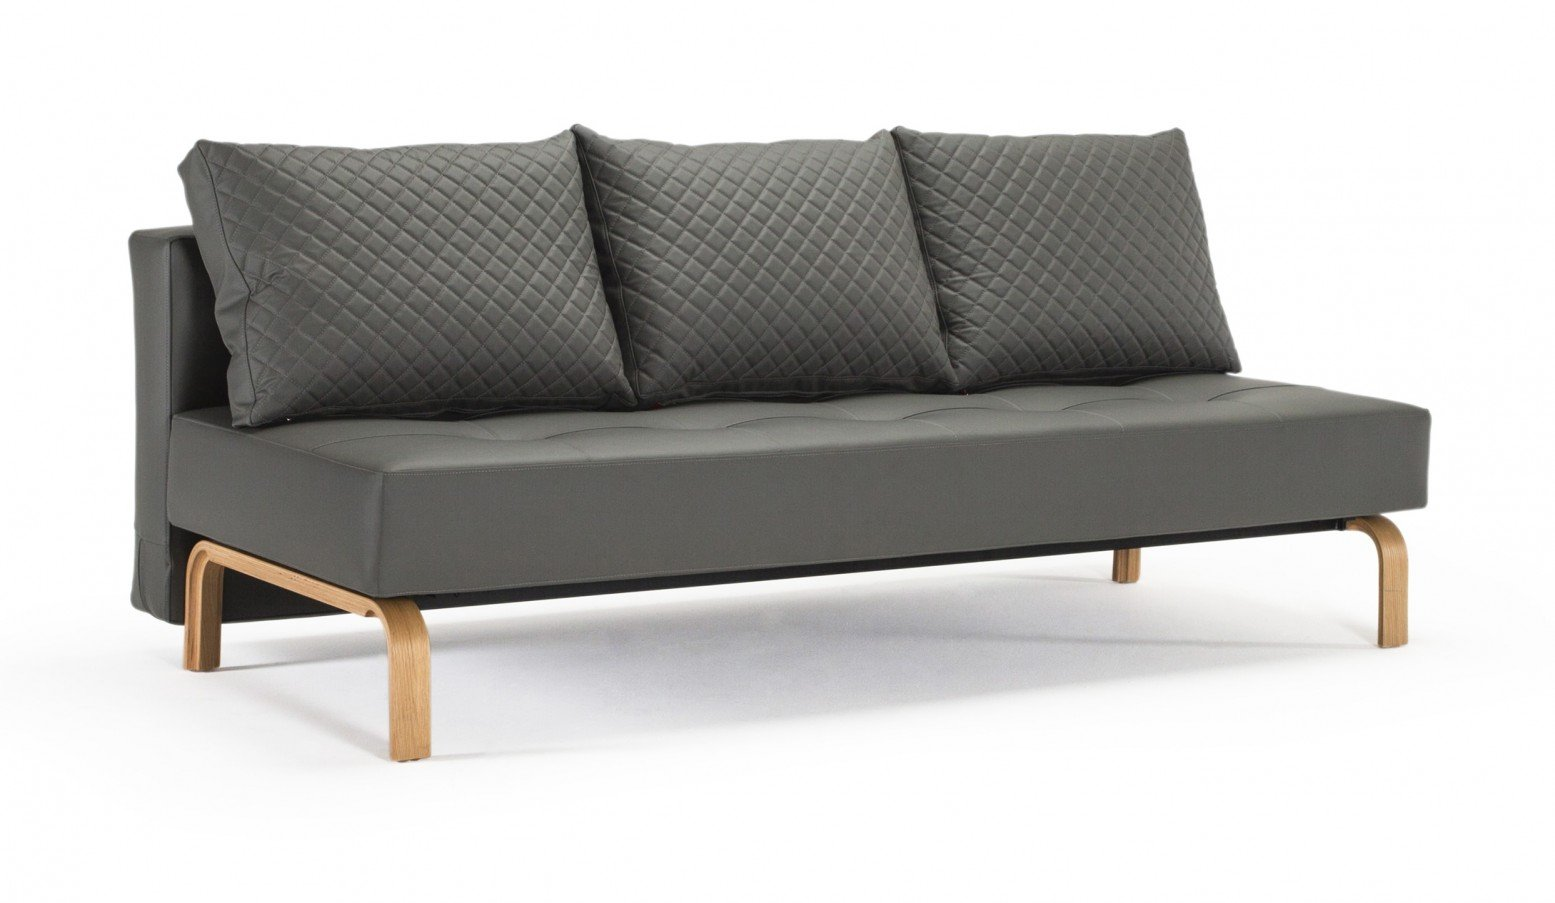 Supremax Quilt Deluxe Full Sofa Bed, 585 Leather Look Grey PU + Oak Legs by  Innovation Living